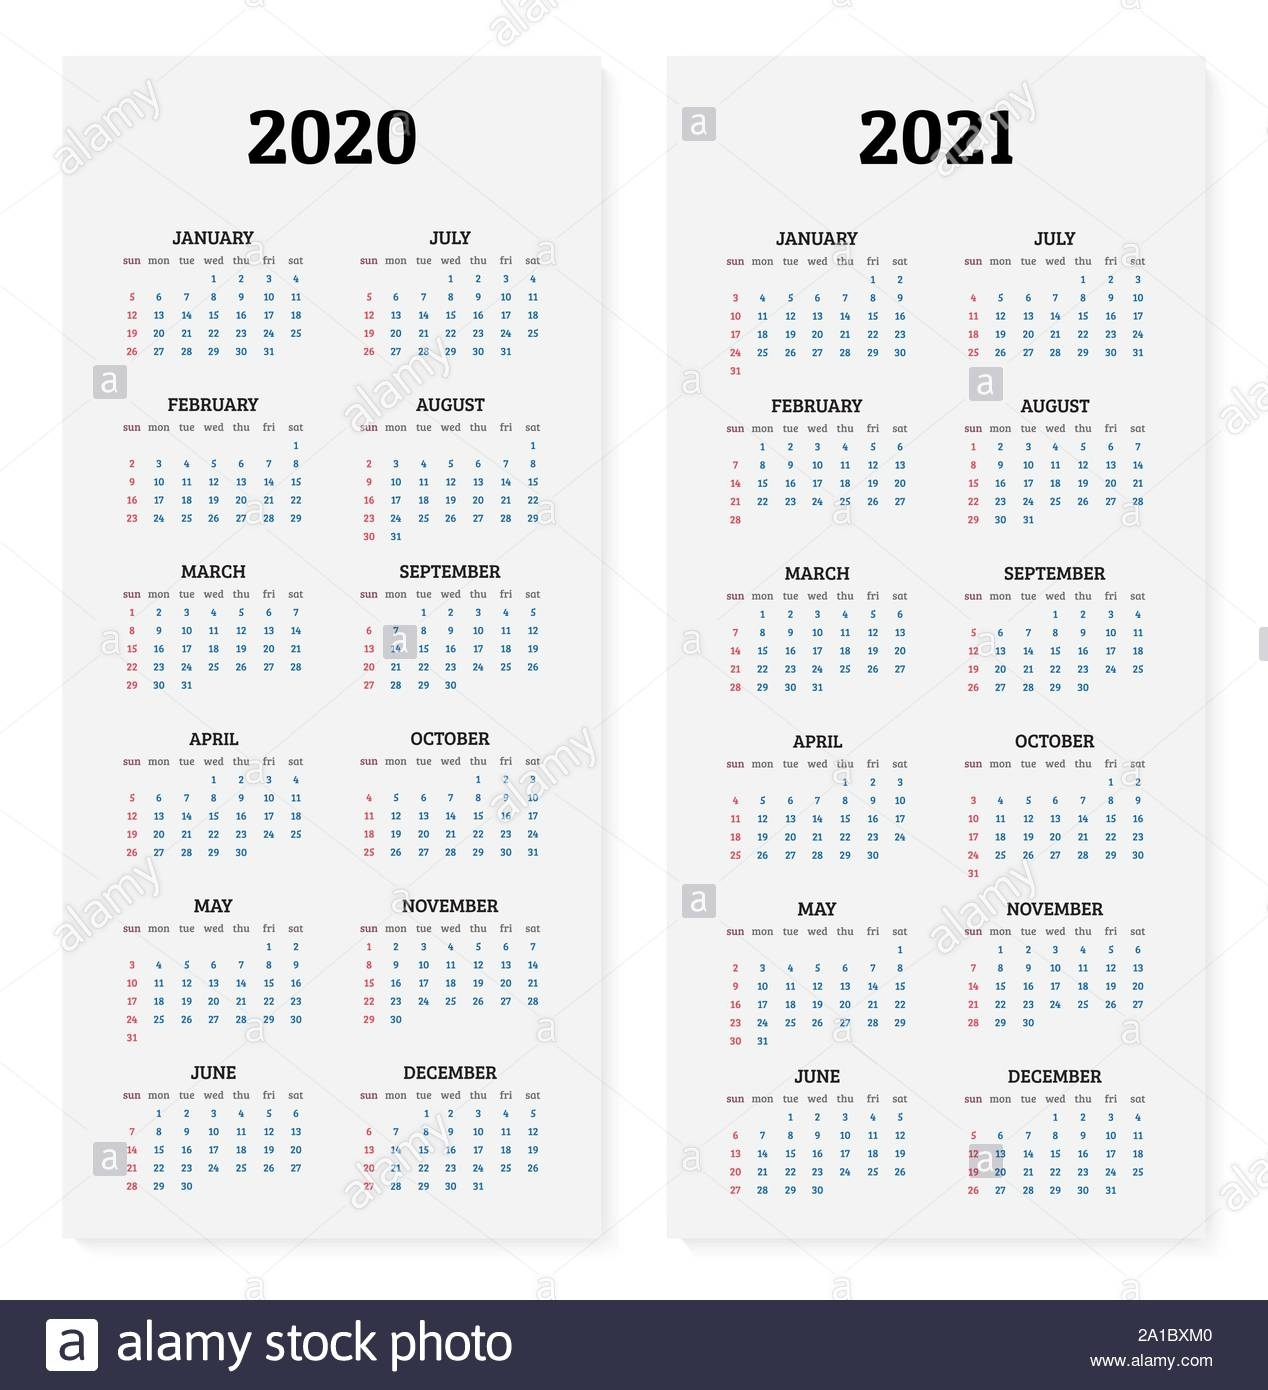 2020 And 2021 Annual Calendar. Vector Illustration Stock